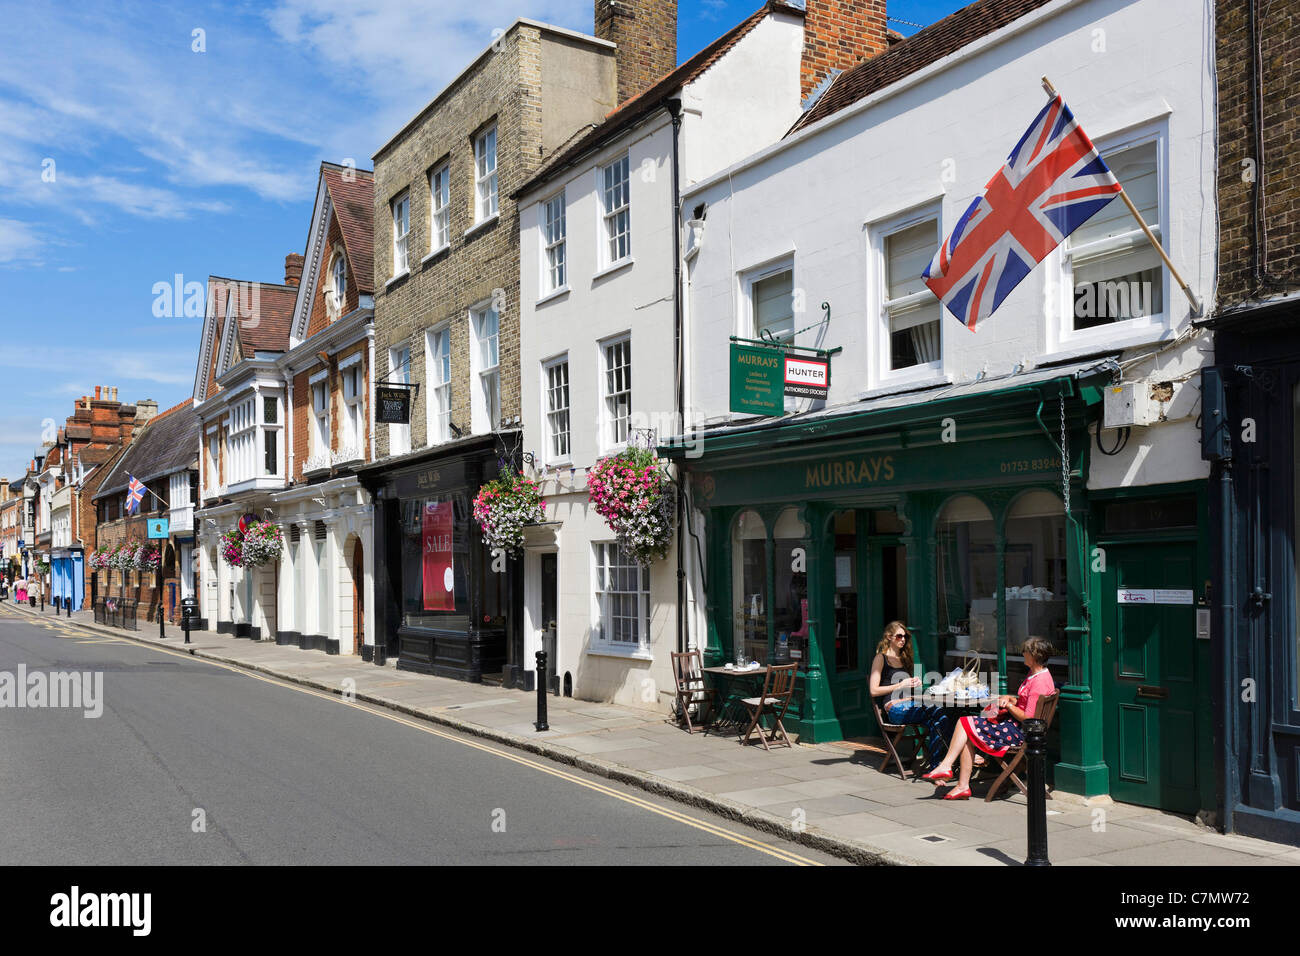 Cafe and shops on the High Street in the town centre, Eton, Berkshire, England, UK Stock Photo